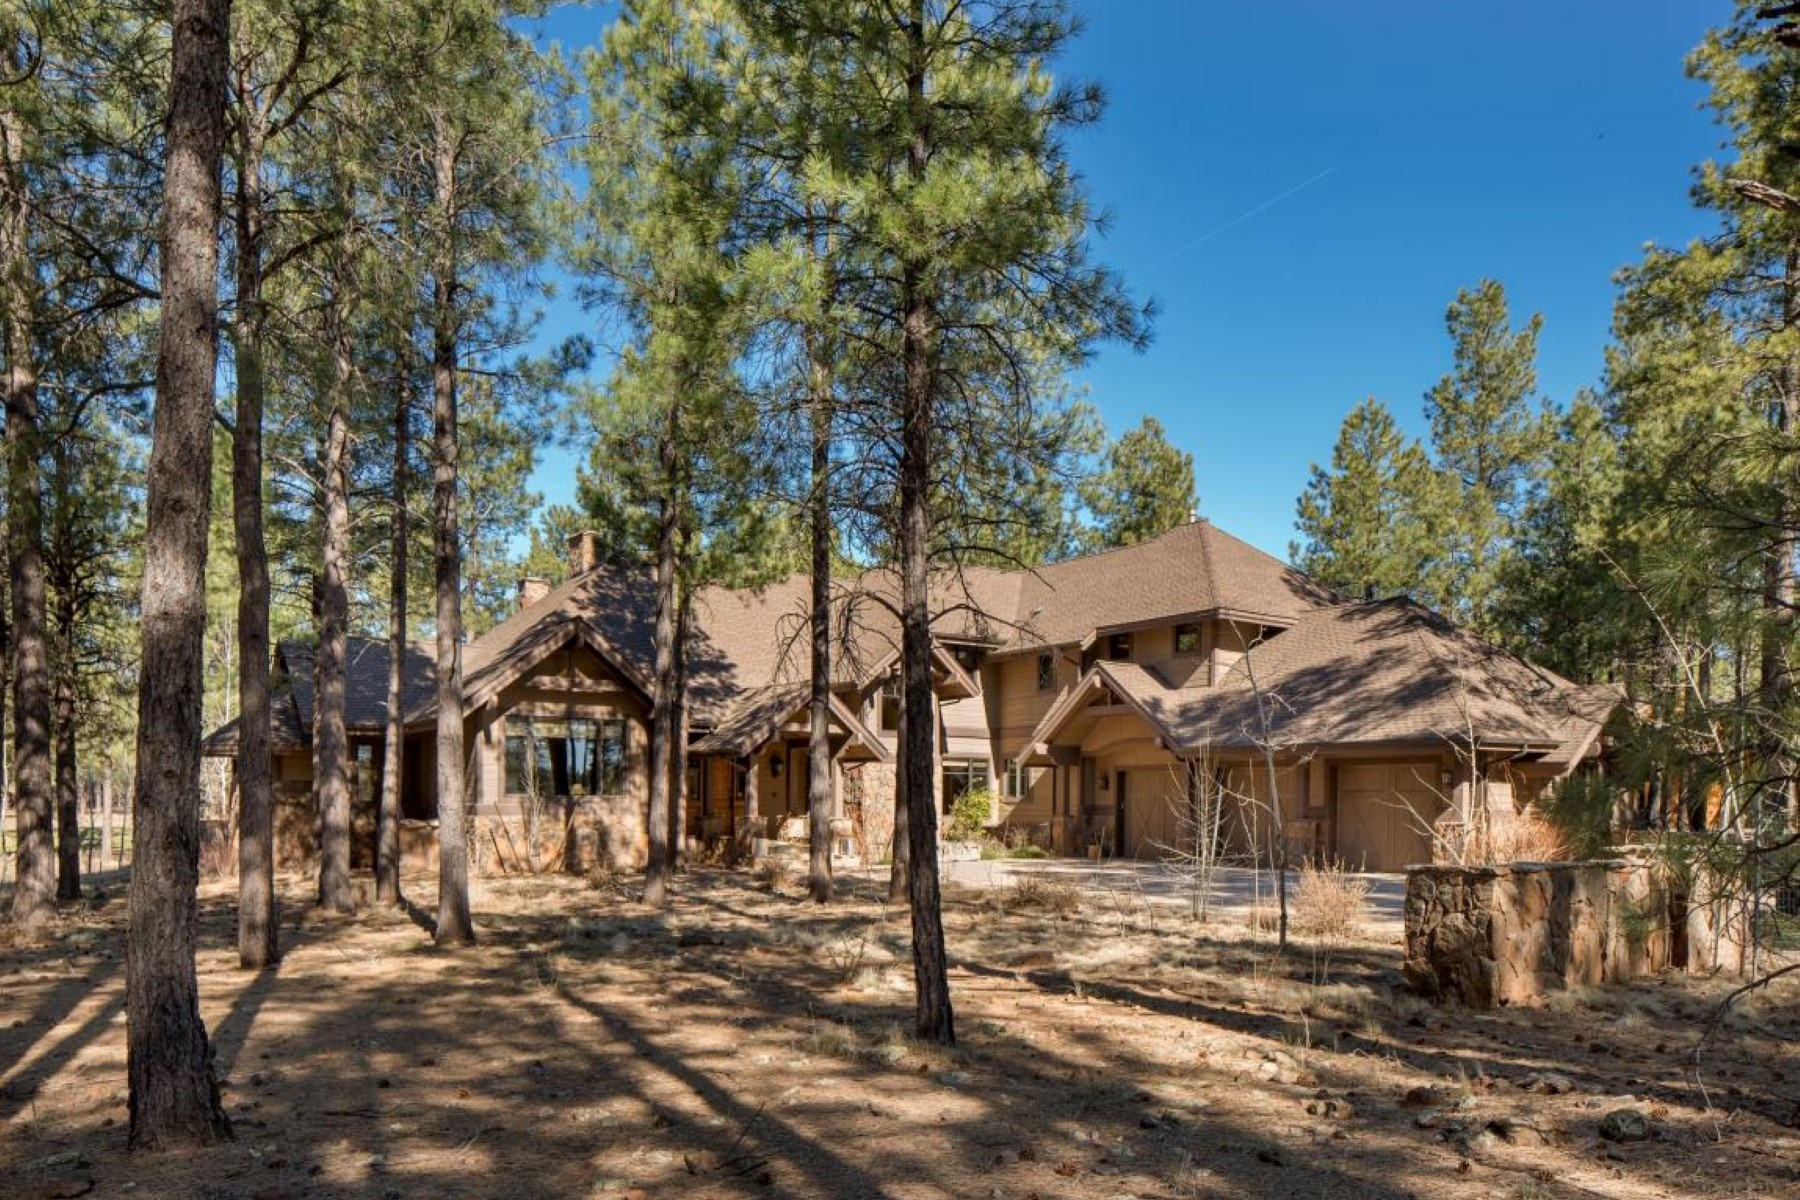 Maison unifamiliale pour l Vente à Custom Craftsman Estate nestled into the Meadows at Forest Highlands Golf Club 1576 Bessie Kidd Best Flagstaff, Arizona, 86005 États-Unis